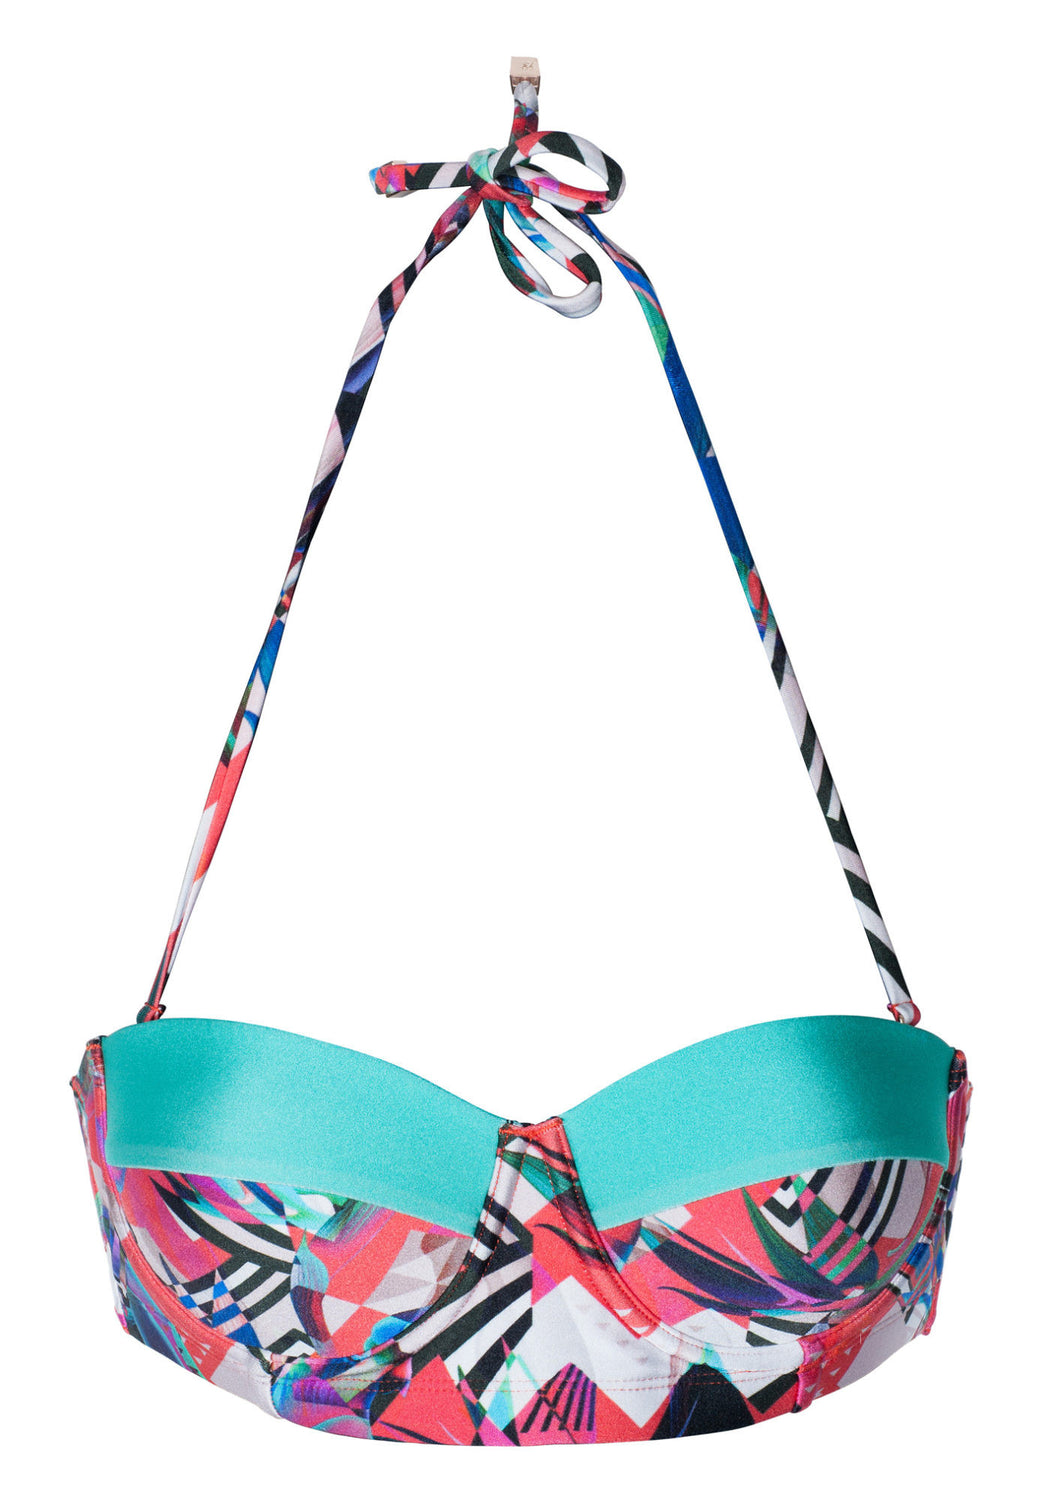 Underwire Bikini Top // The Lark